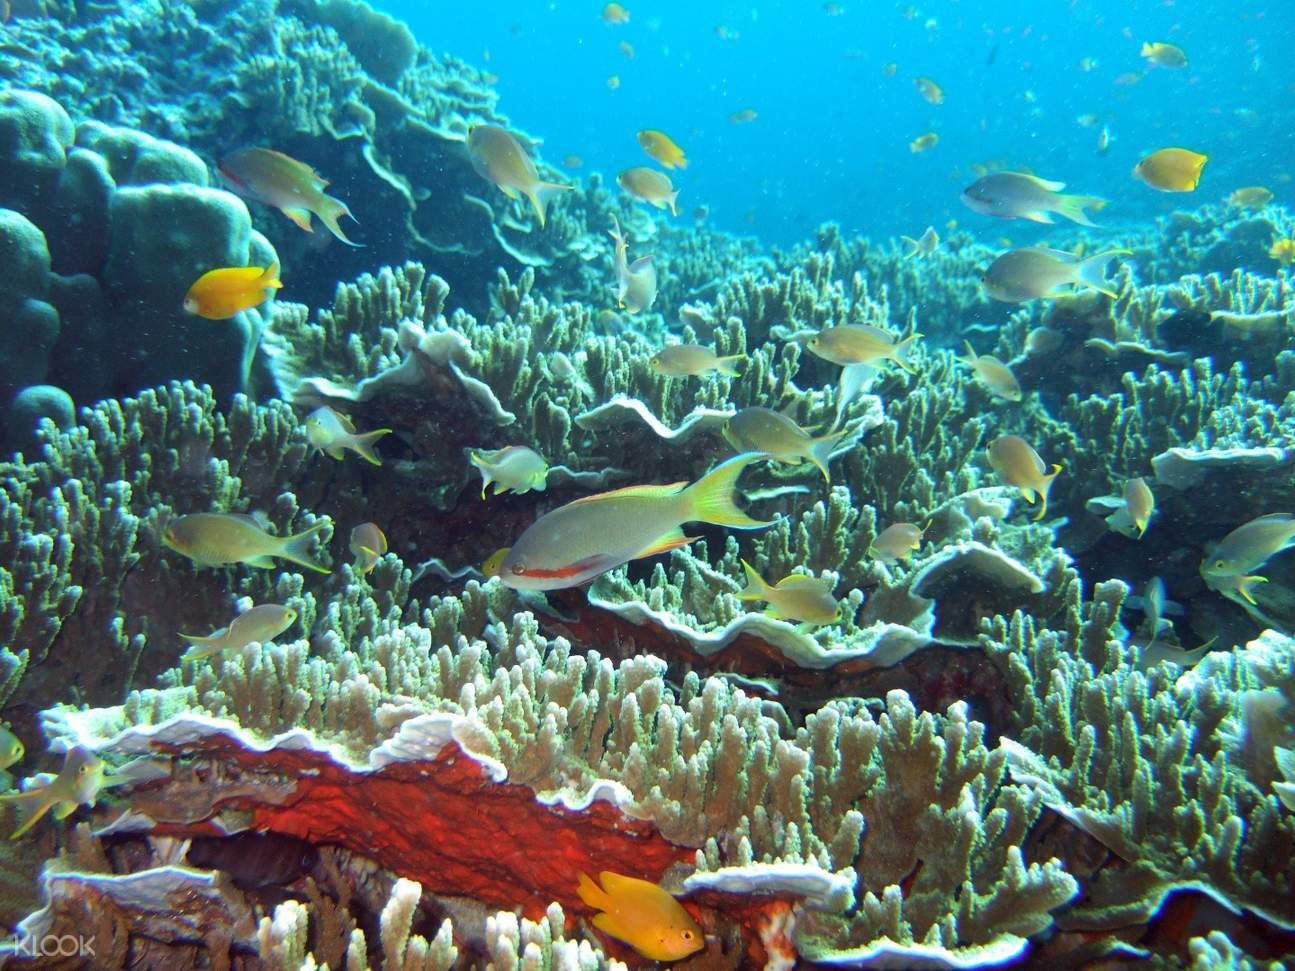 Marine Life at Pescador Island Snorkeling Join In Day Tour from Cebu